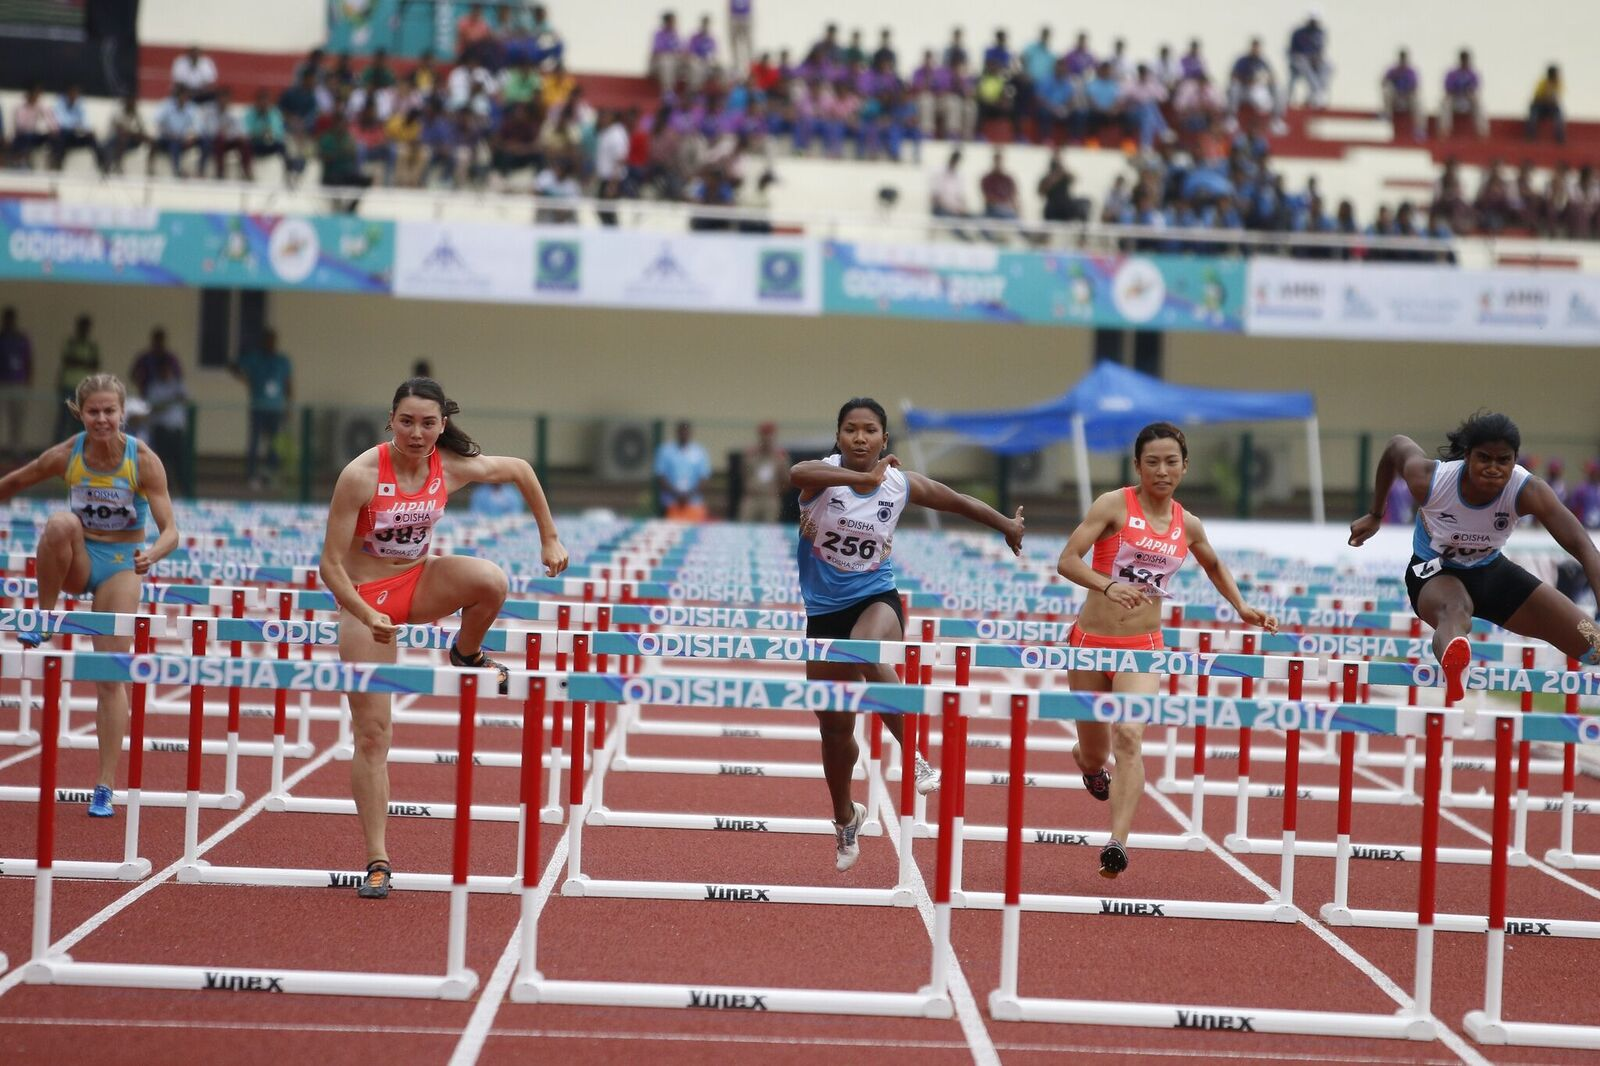 Female athletes competing in a hurdles race